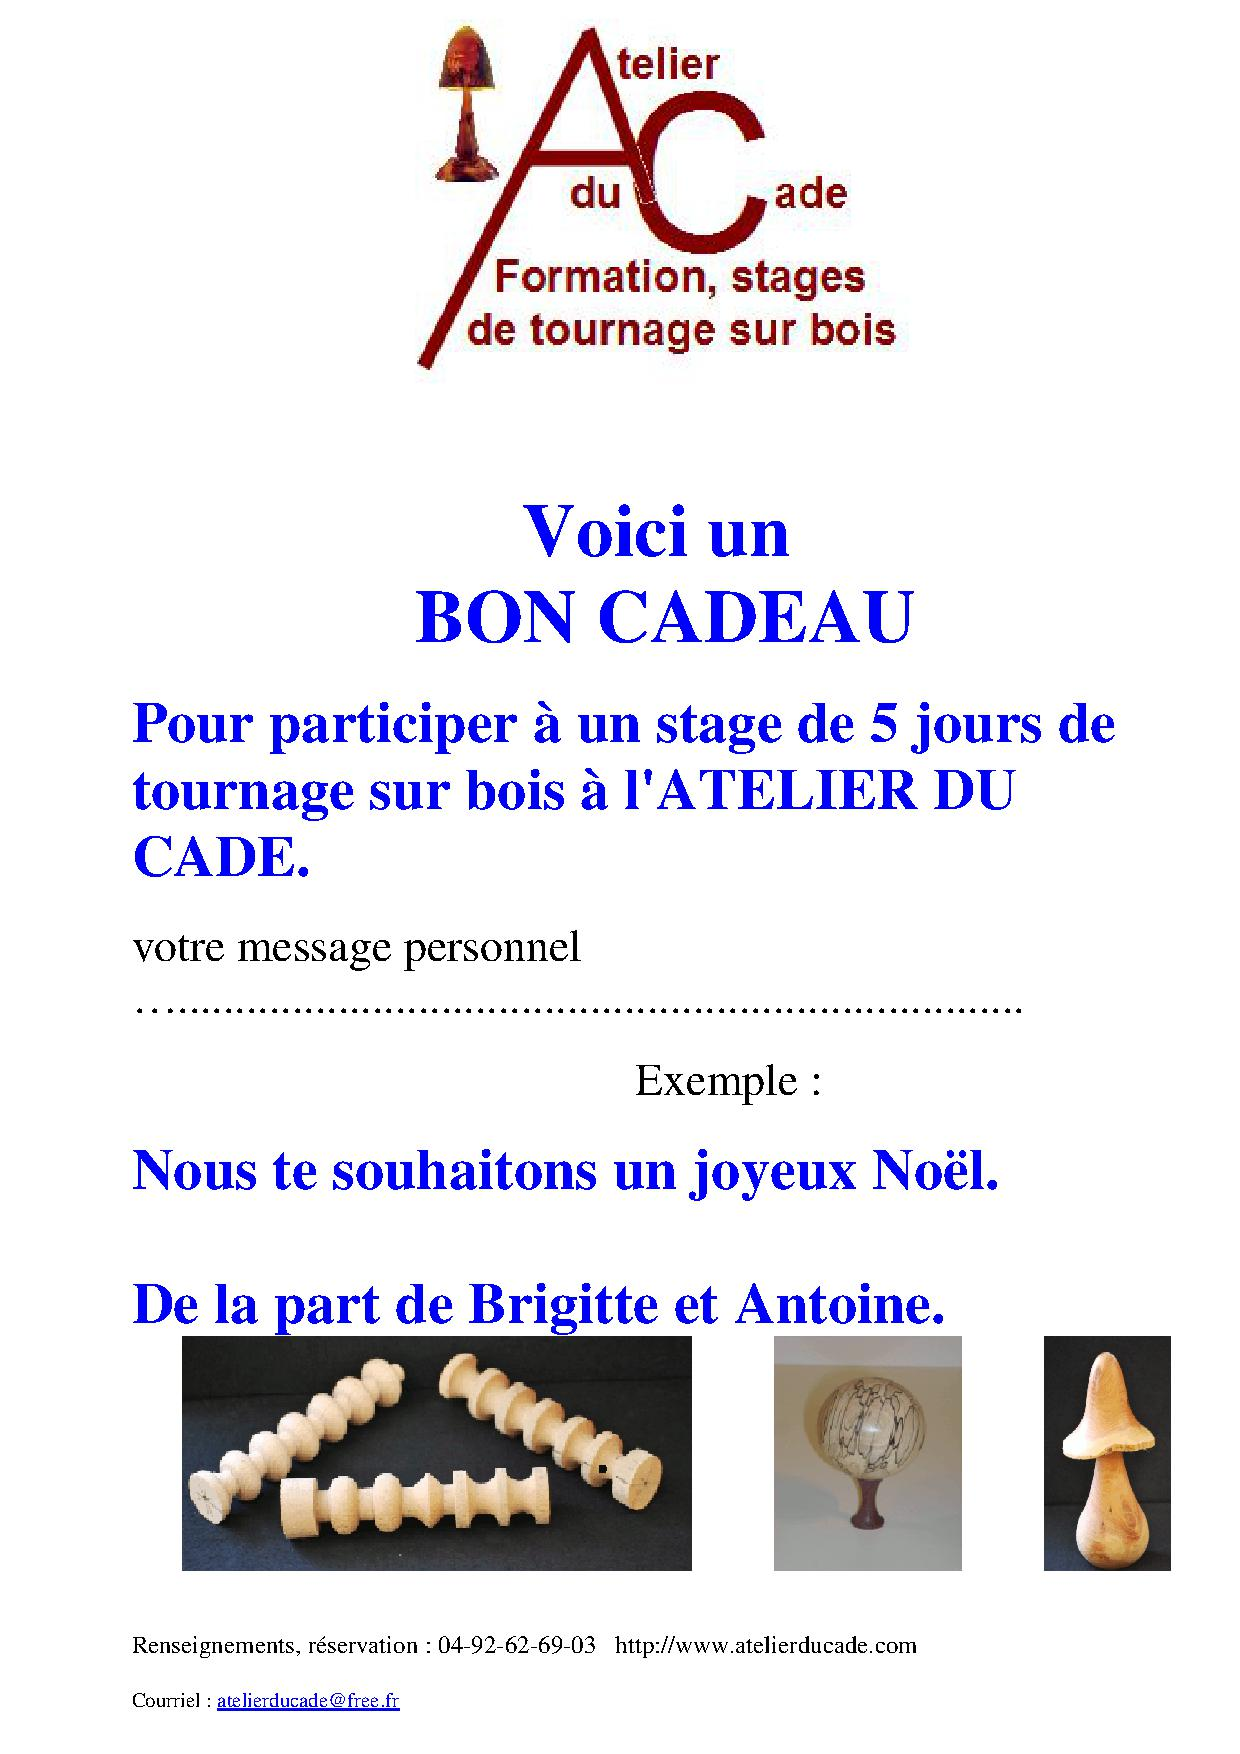 Formation Tournage Sur Bois - stages, formation de tournage sur bois, bons cadeaux tournage sur bois